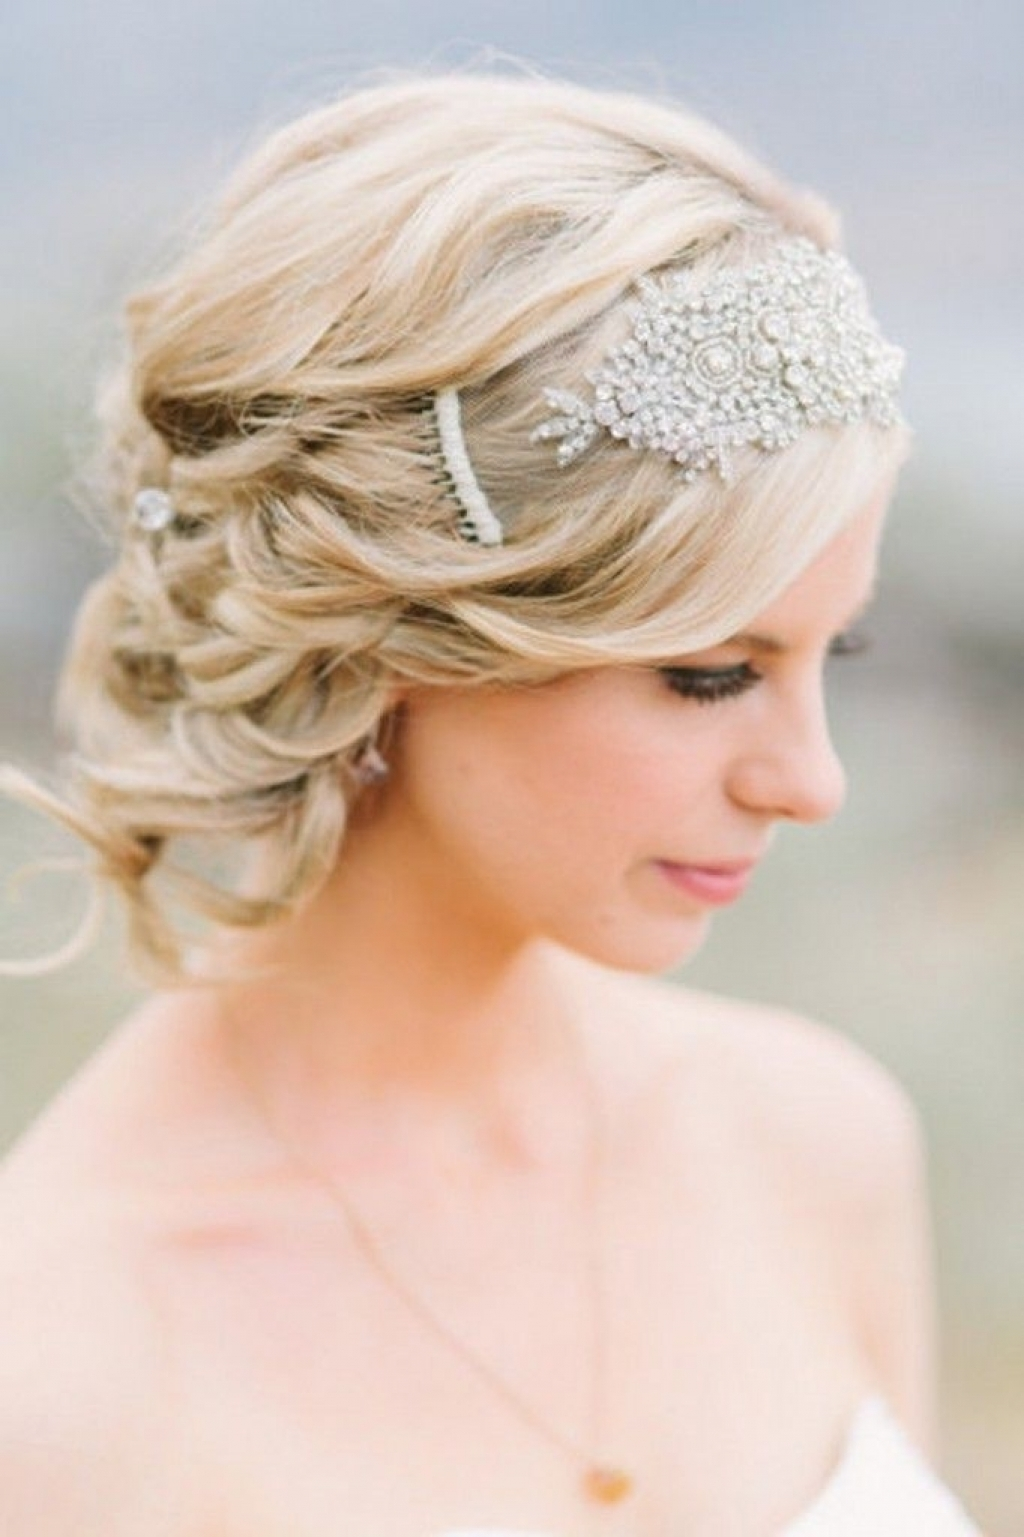 Latest Wedding Hairstyles For Short Hair For Bridesmaids Intended For Ideast Bob Hairstyles For Wedding Guest Curly Guests Bride Black (Gallery 11 of 15)